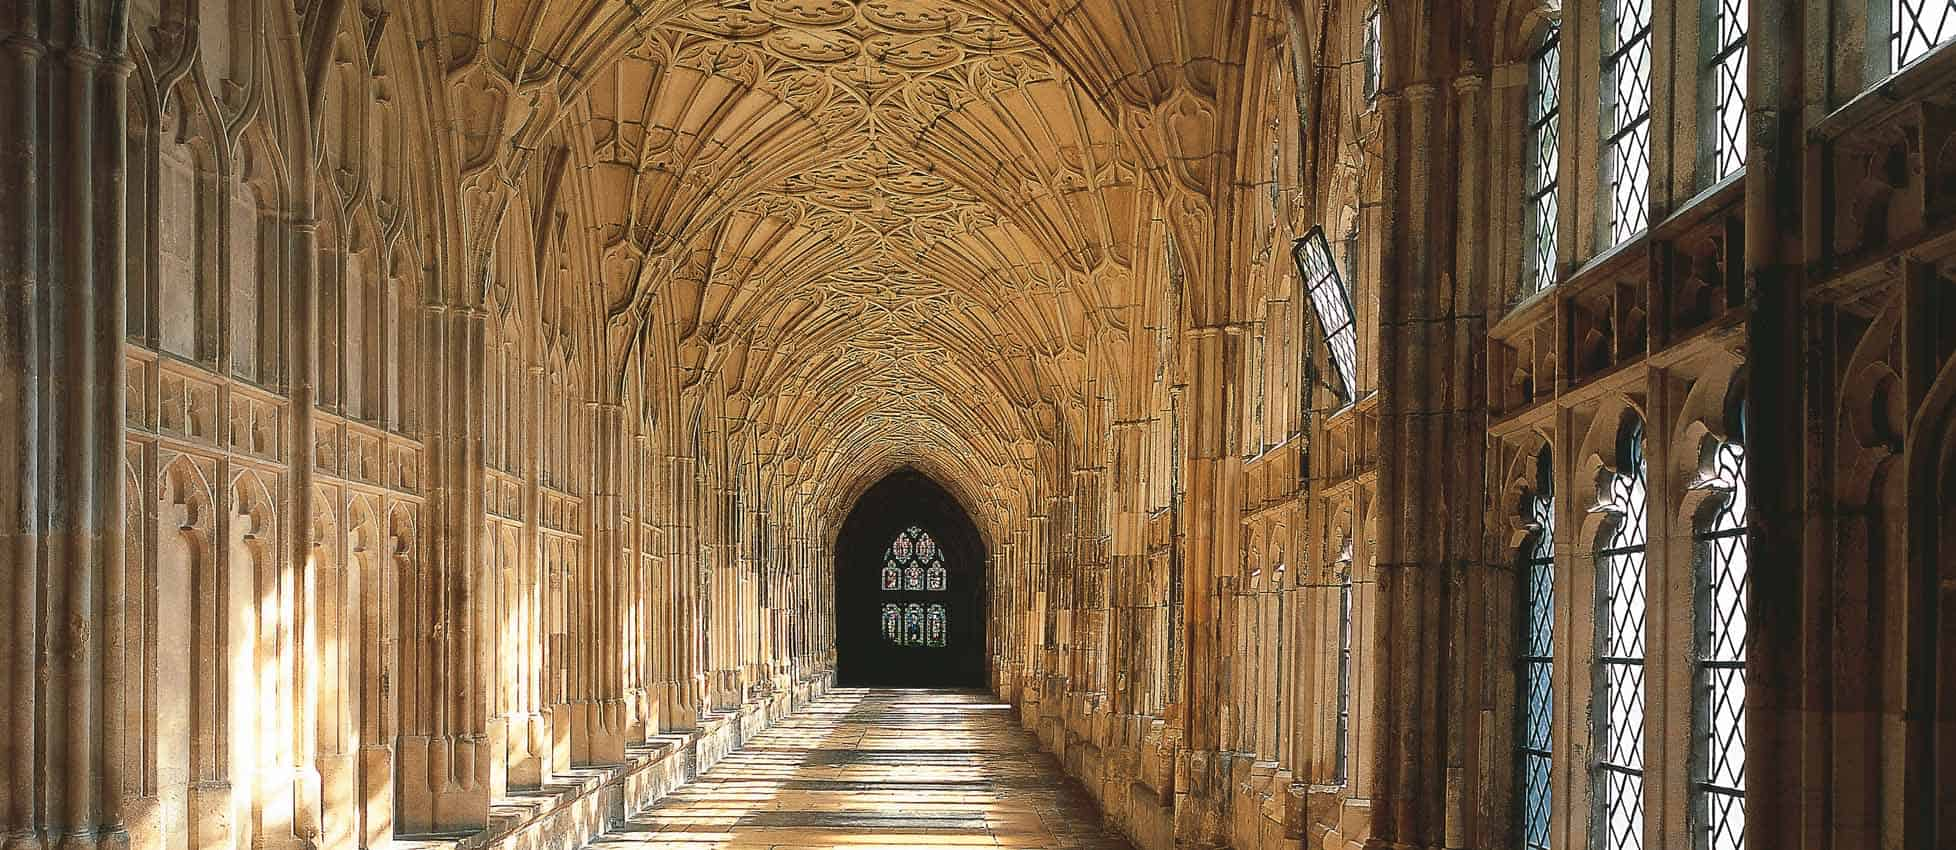 Gloucester Cathedral - The Association of English Cathedrals